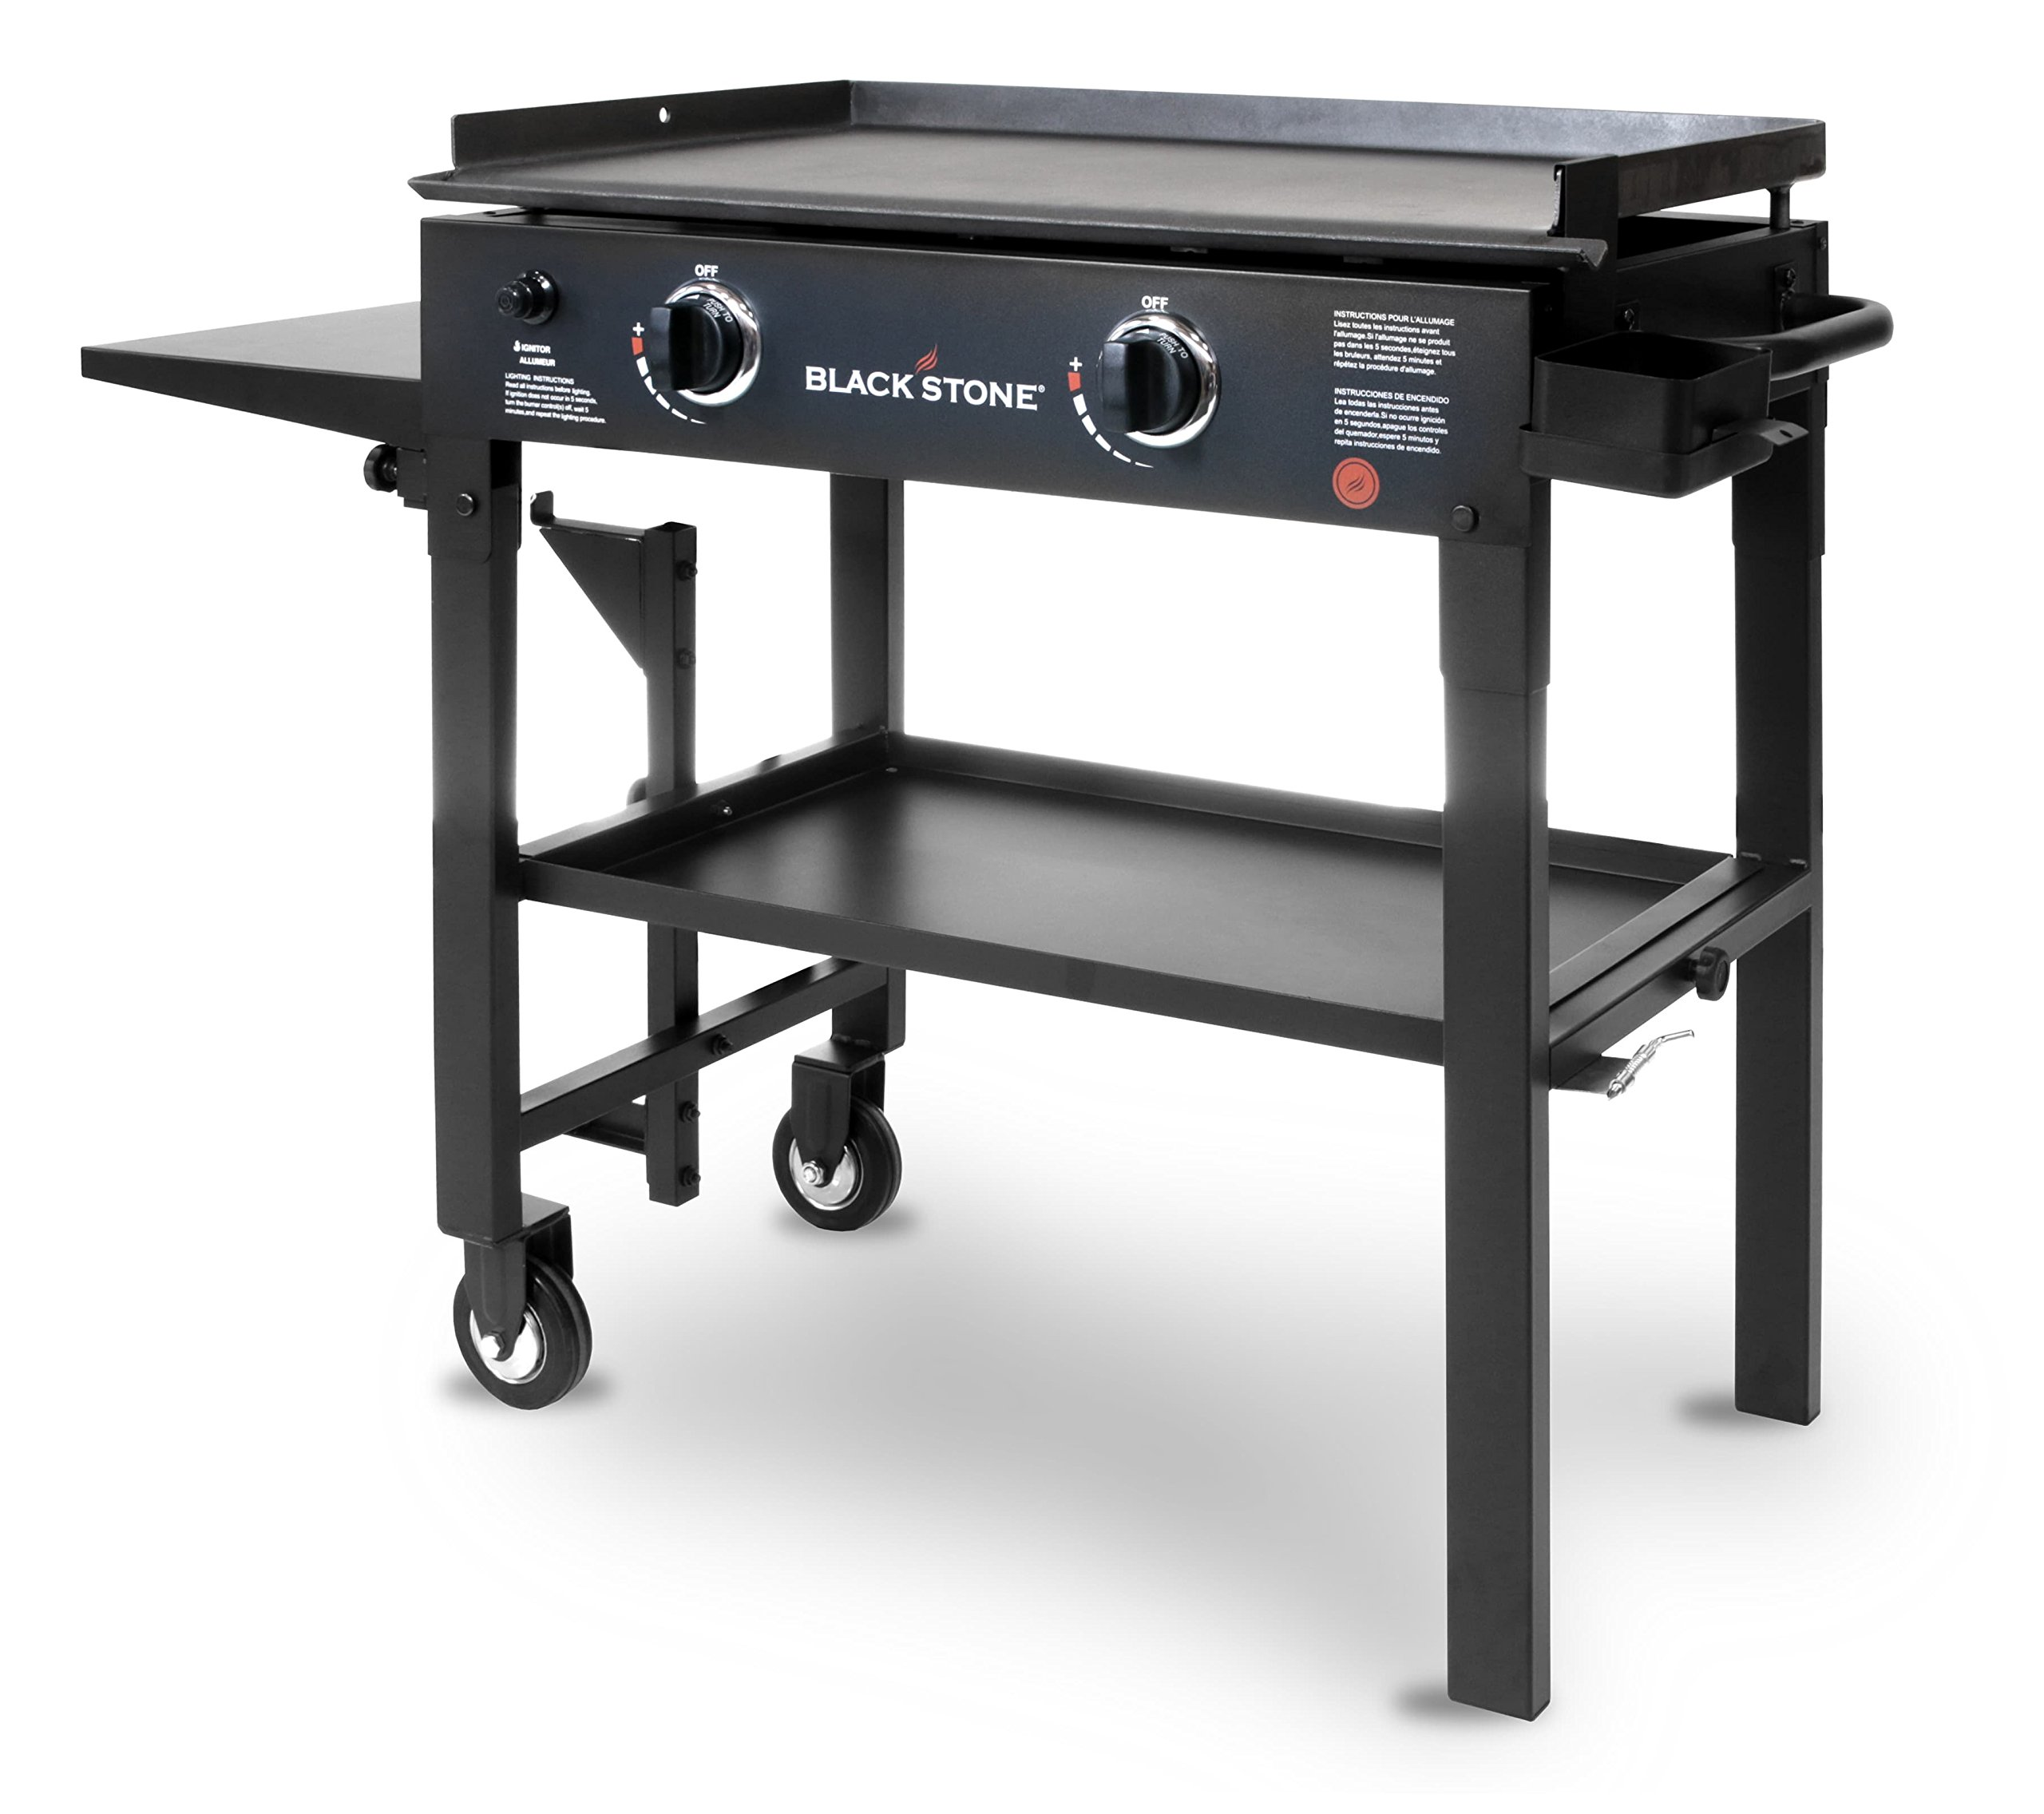 Blackstone 28 inch Outdoor Flat Top Gas Grill Griddle Station - 2-burner - Propane Fueled - Restaurant Grade - Professional Quality by Blackstone